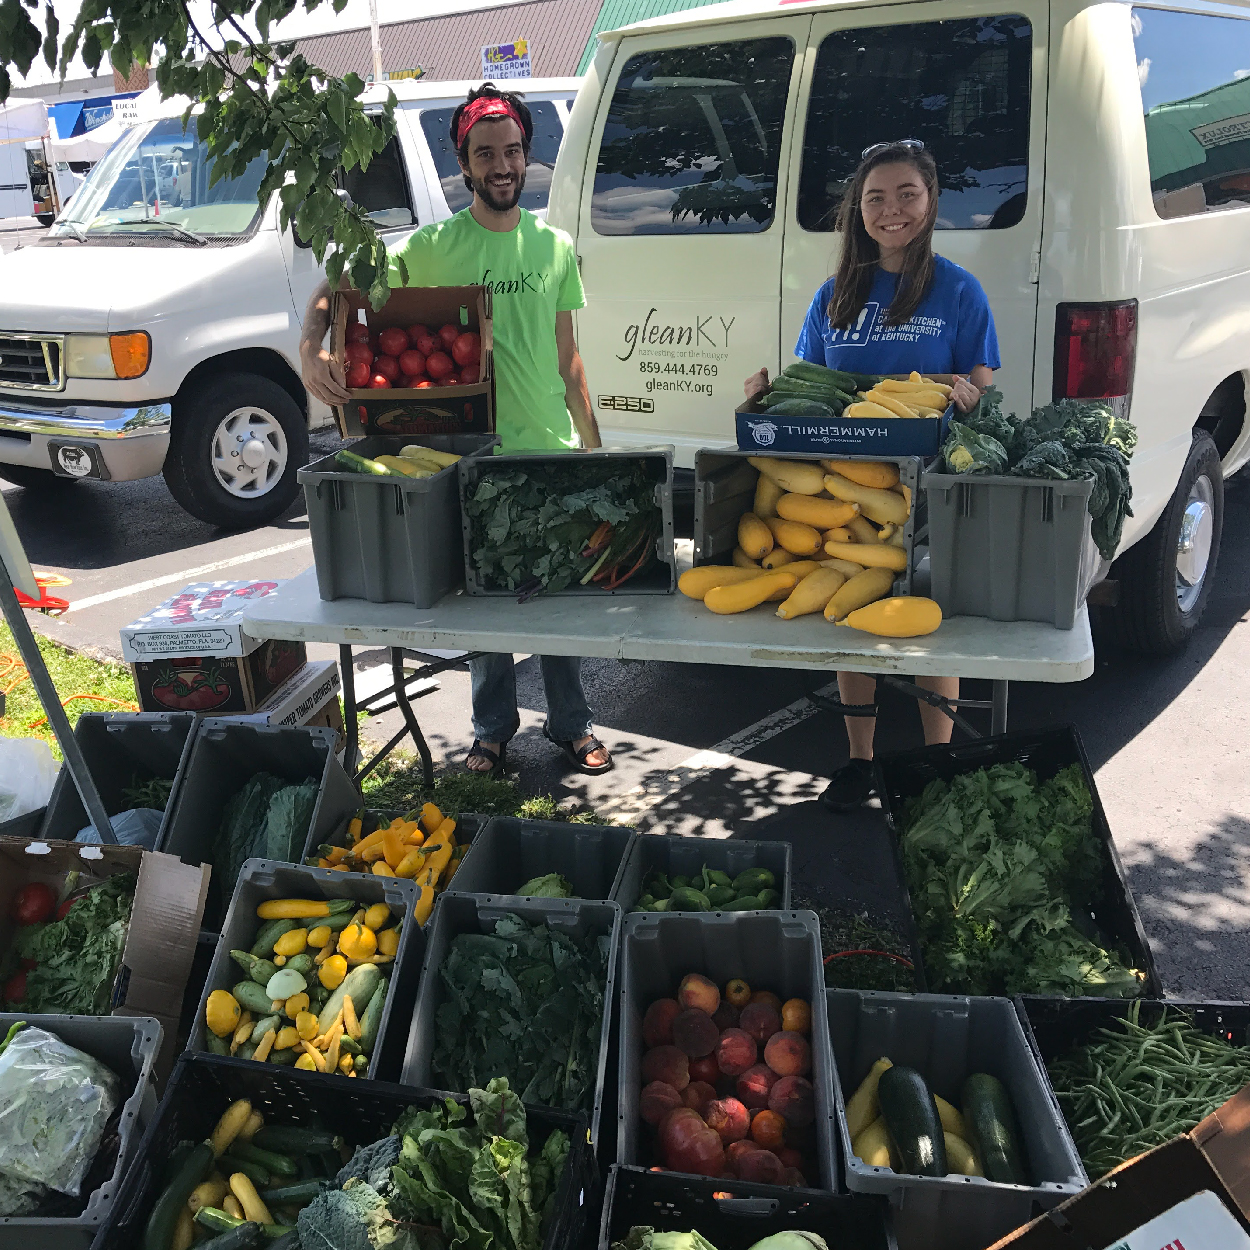 Gleaning the Lexington Farmers' Market